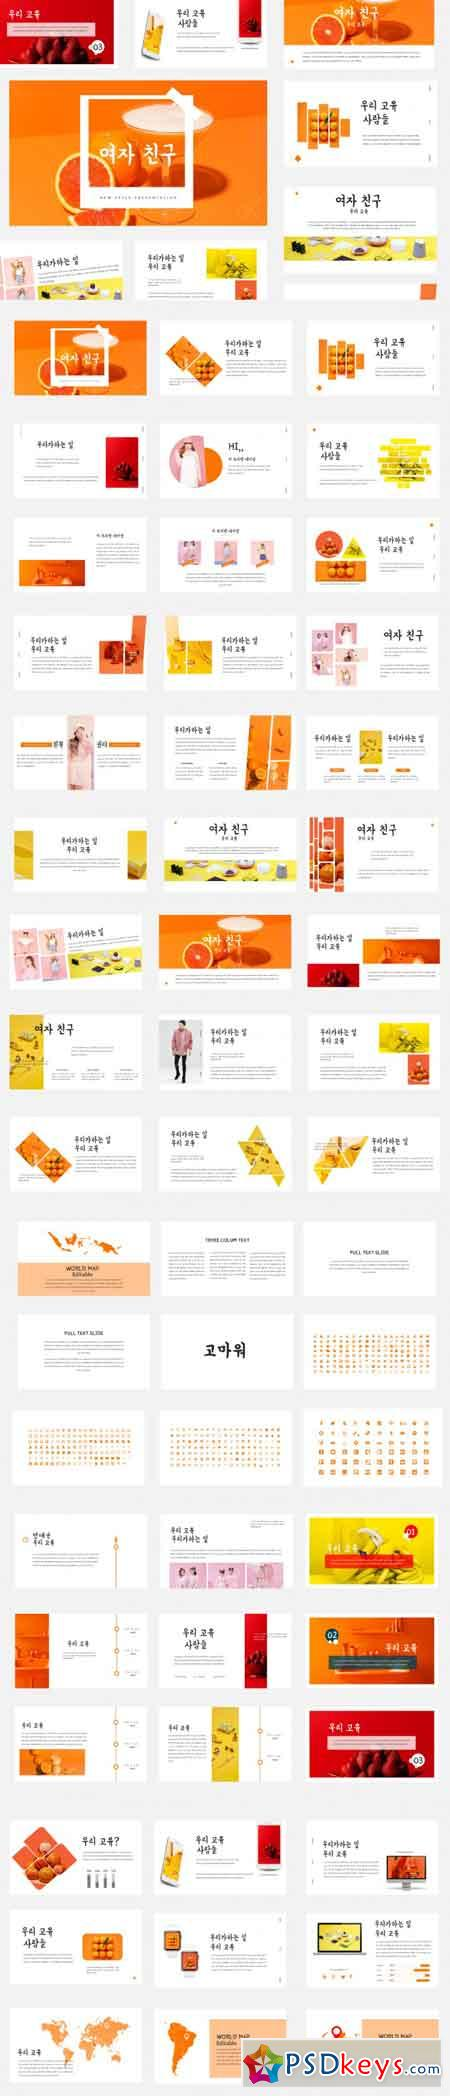 Yeoja Chingu - Multipupose Presentation Template 3465924